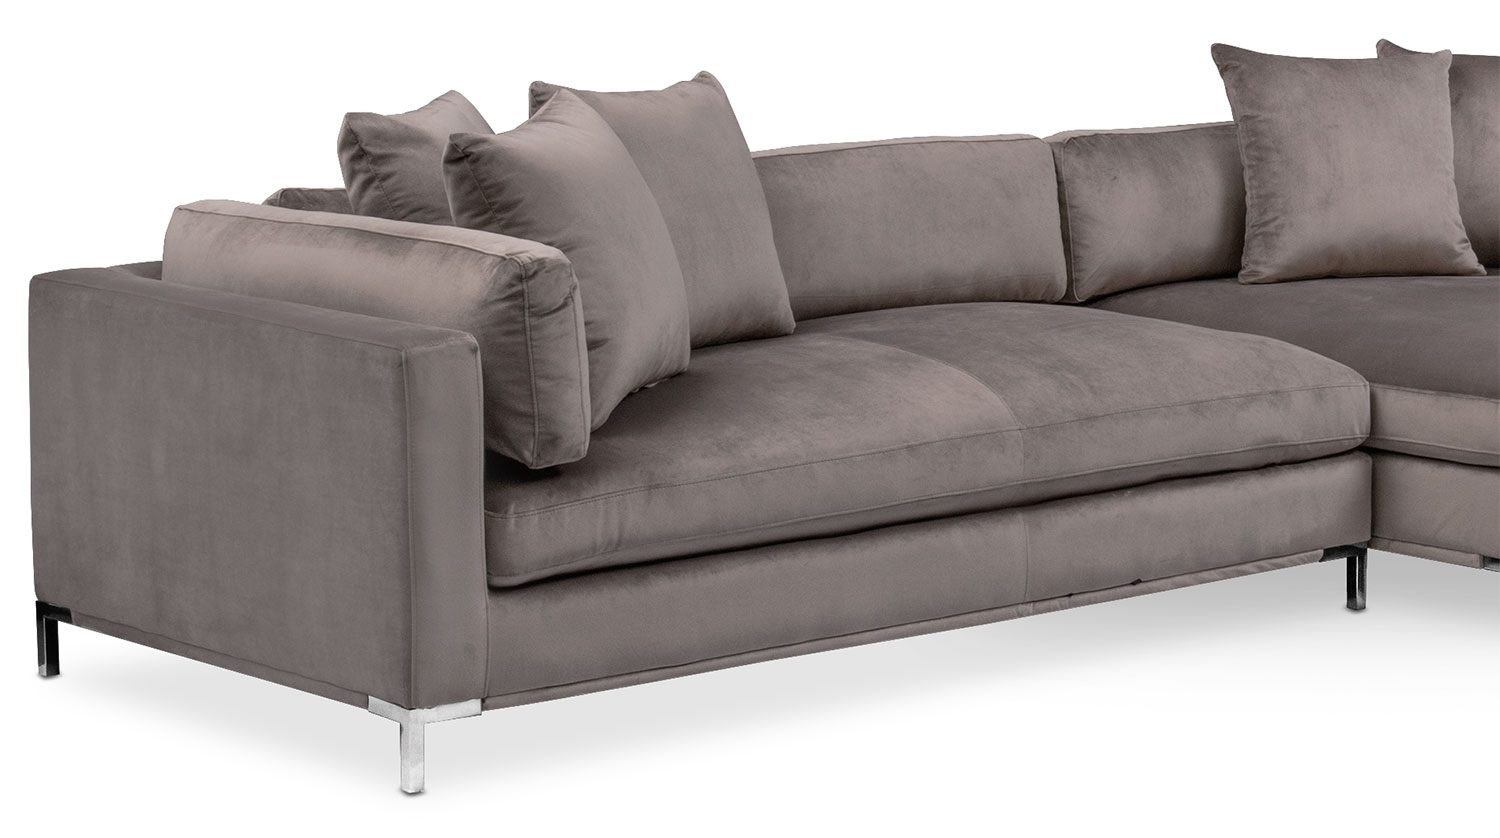 Moda 3-Piece Sectional With Left-Facing Chaise - Oyster | Value City with Nico Grey Sectionals With Left Facing Storage Chaise (Image 18 of 30)